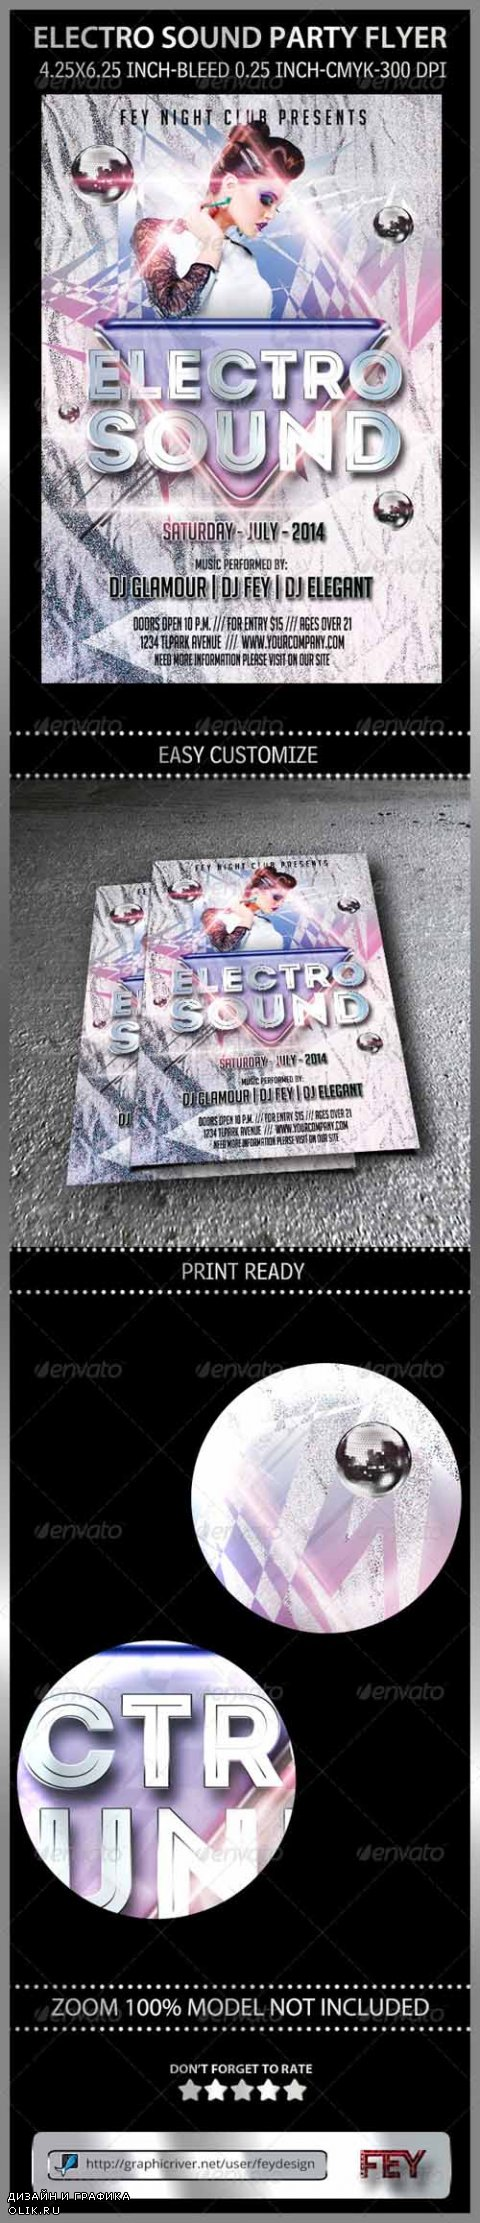 Electro Sound Party Flyer 8178696